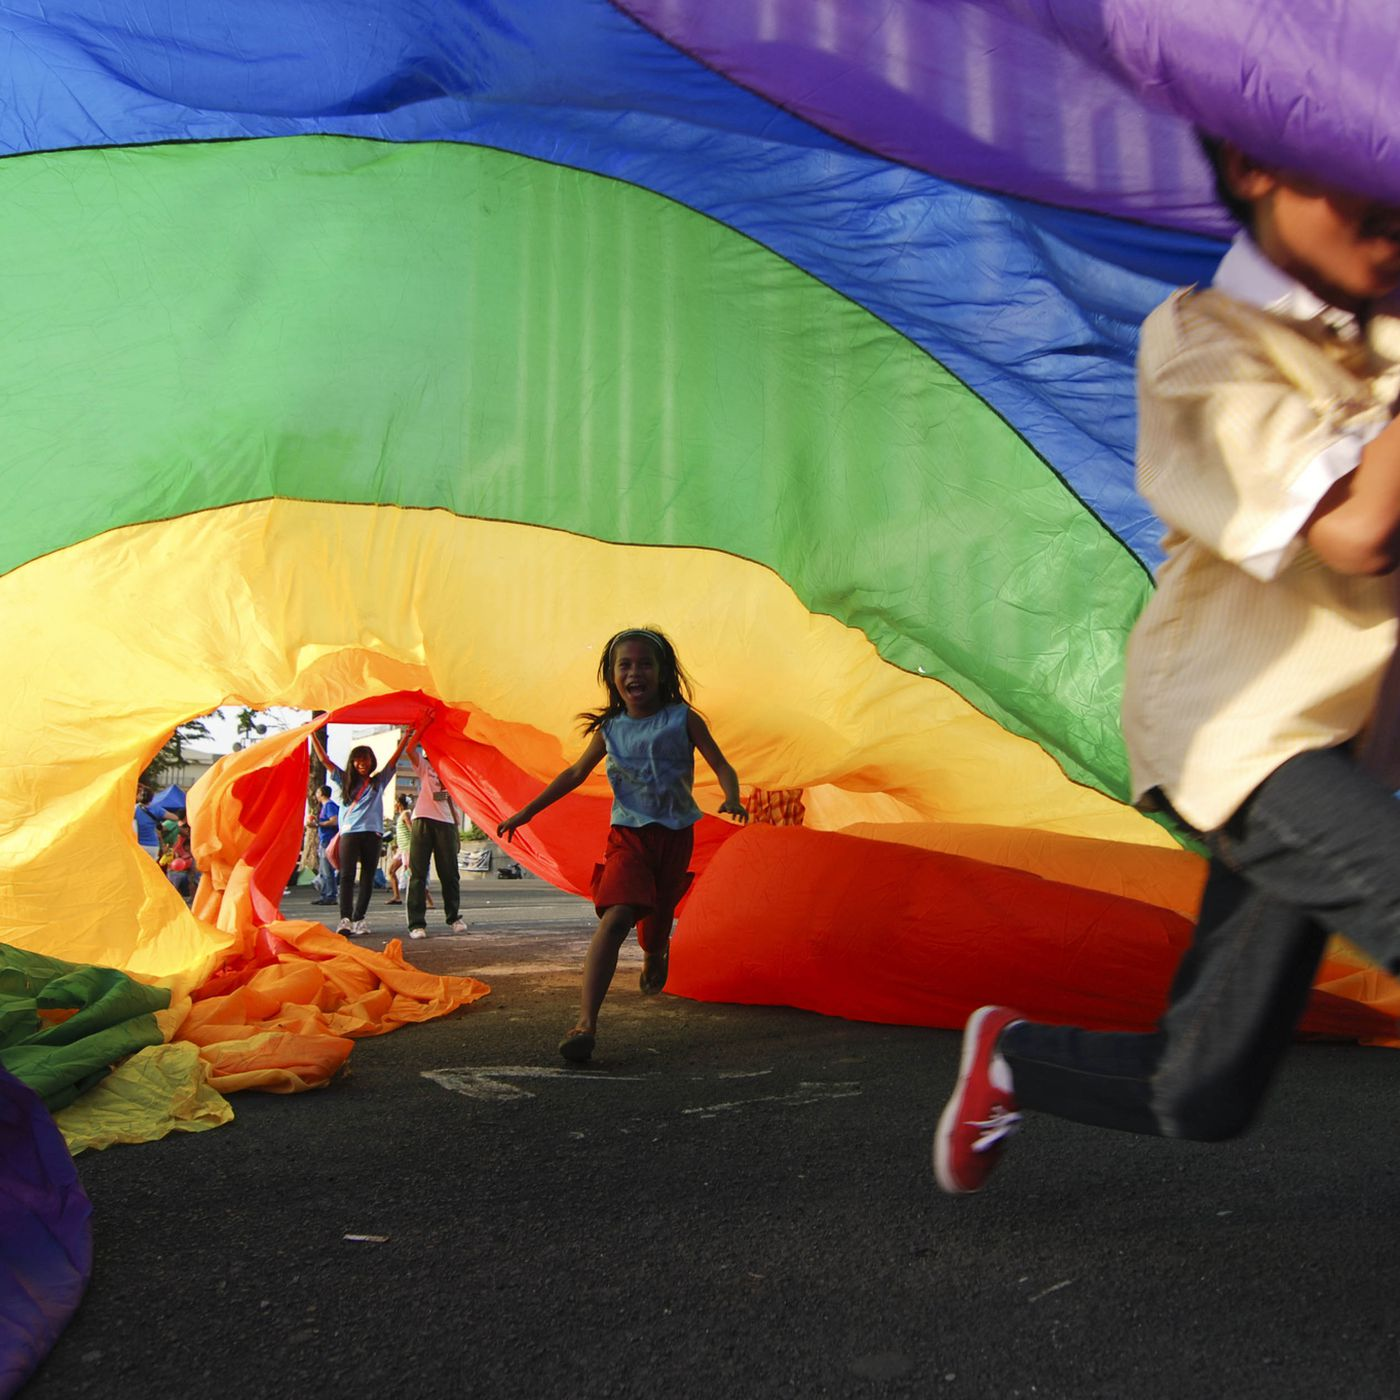 Why a Florida lawmaker thinks Common Core tests will make kids gay